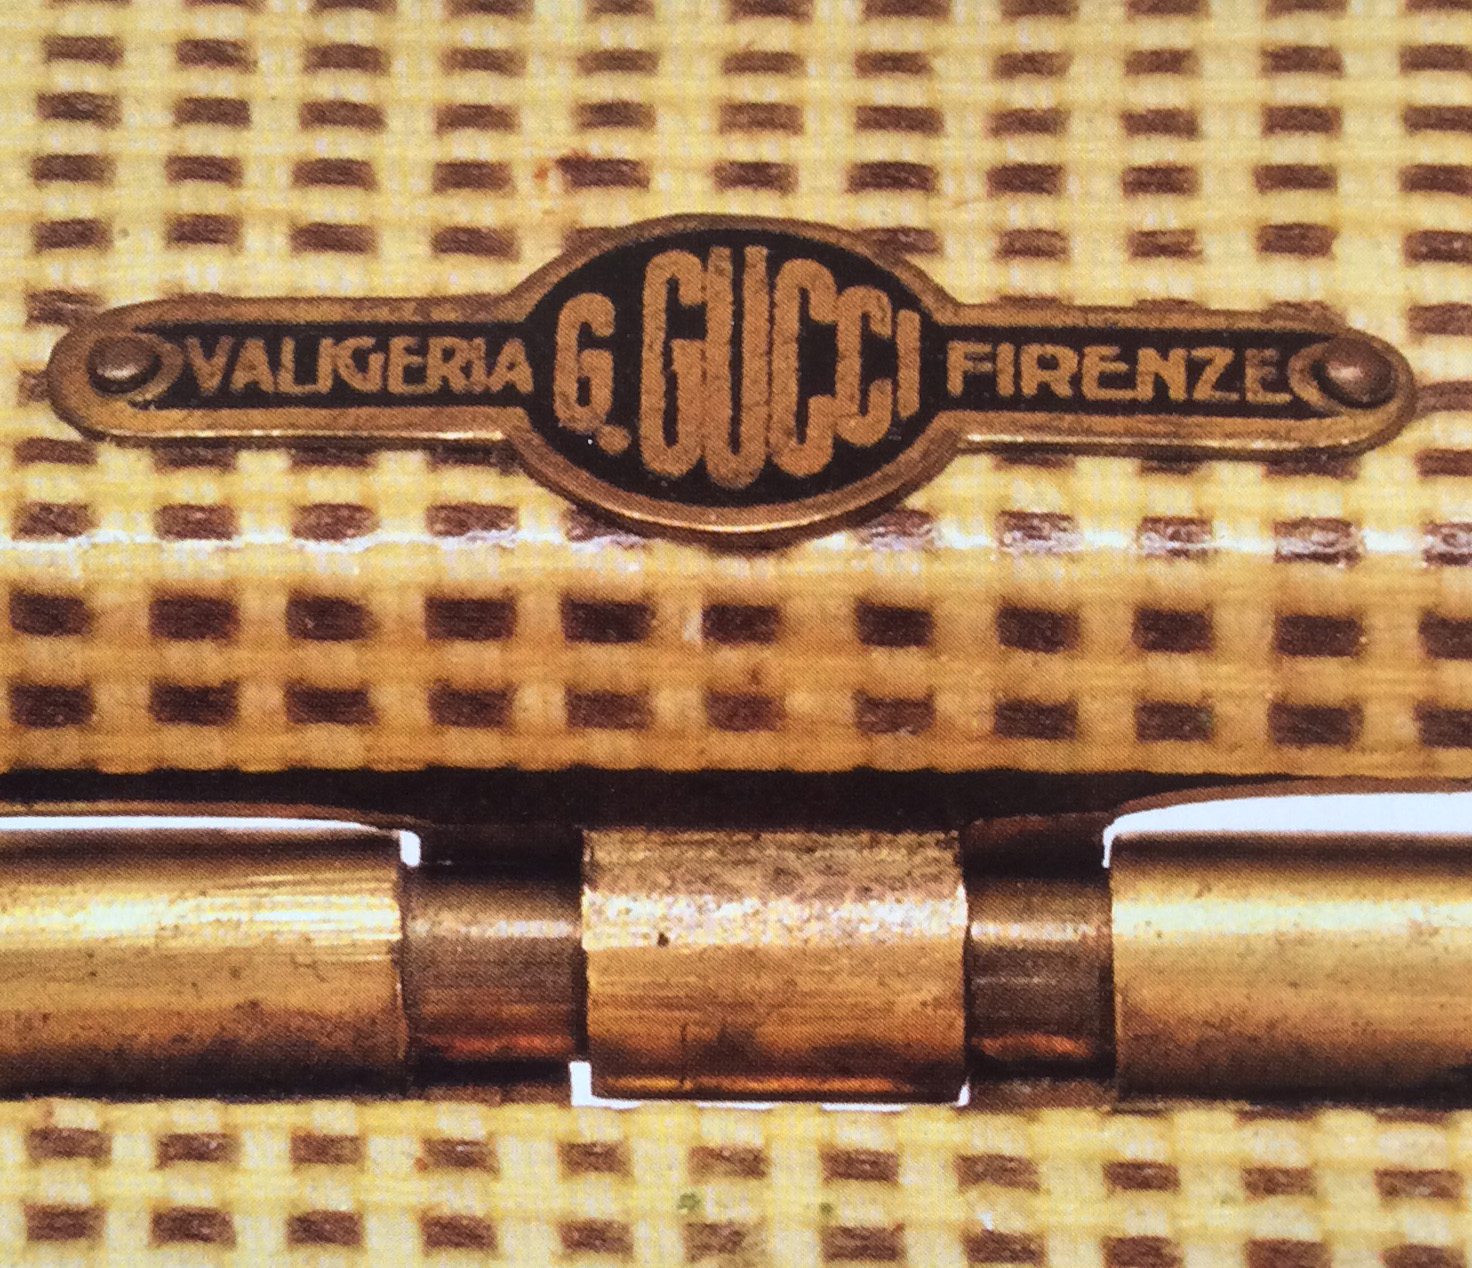 Bagaholic 101 - Gucci Heritage, Icons, and Beyond - 1930s luggage interior showing all caps in metal plaque with 'VALIGERIA G. GUCCI FIRENZE'